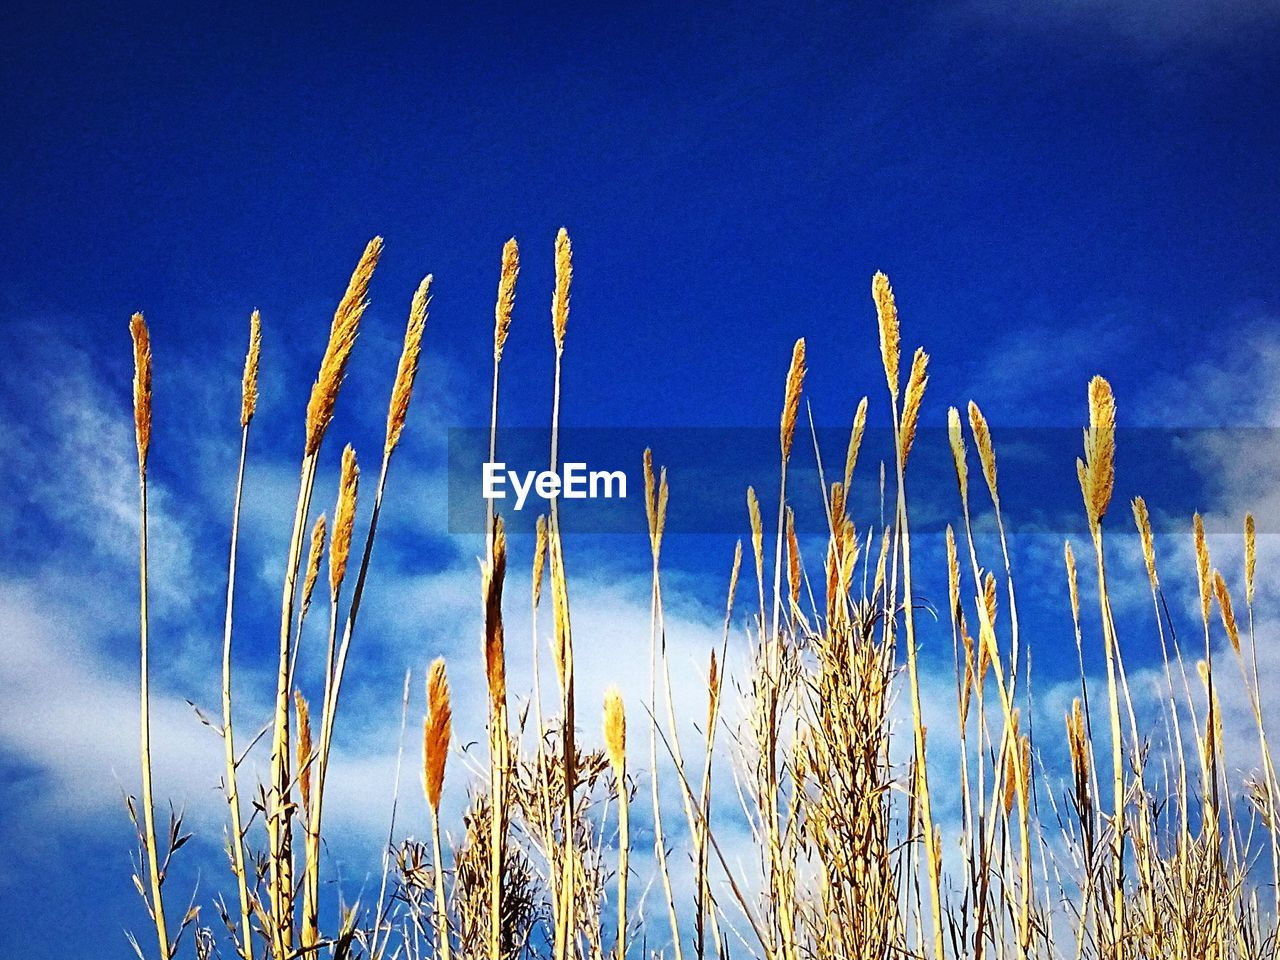 growth, nature, blue, no people, beauty in nature, tranquility, plant, tranquil scene, sky, outdoors, low angle view, day, close-up